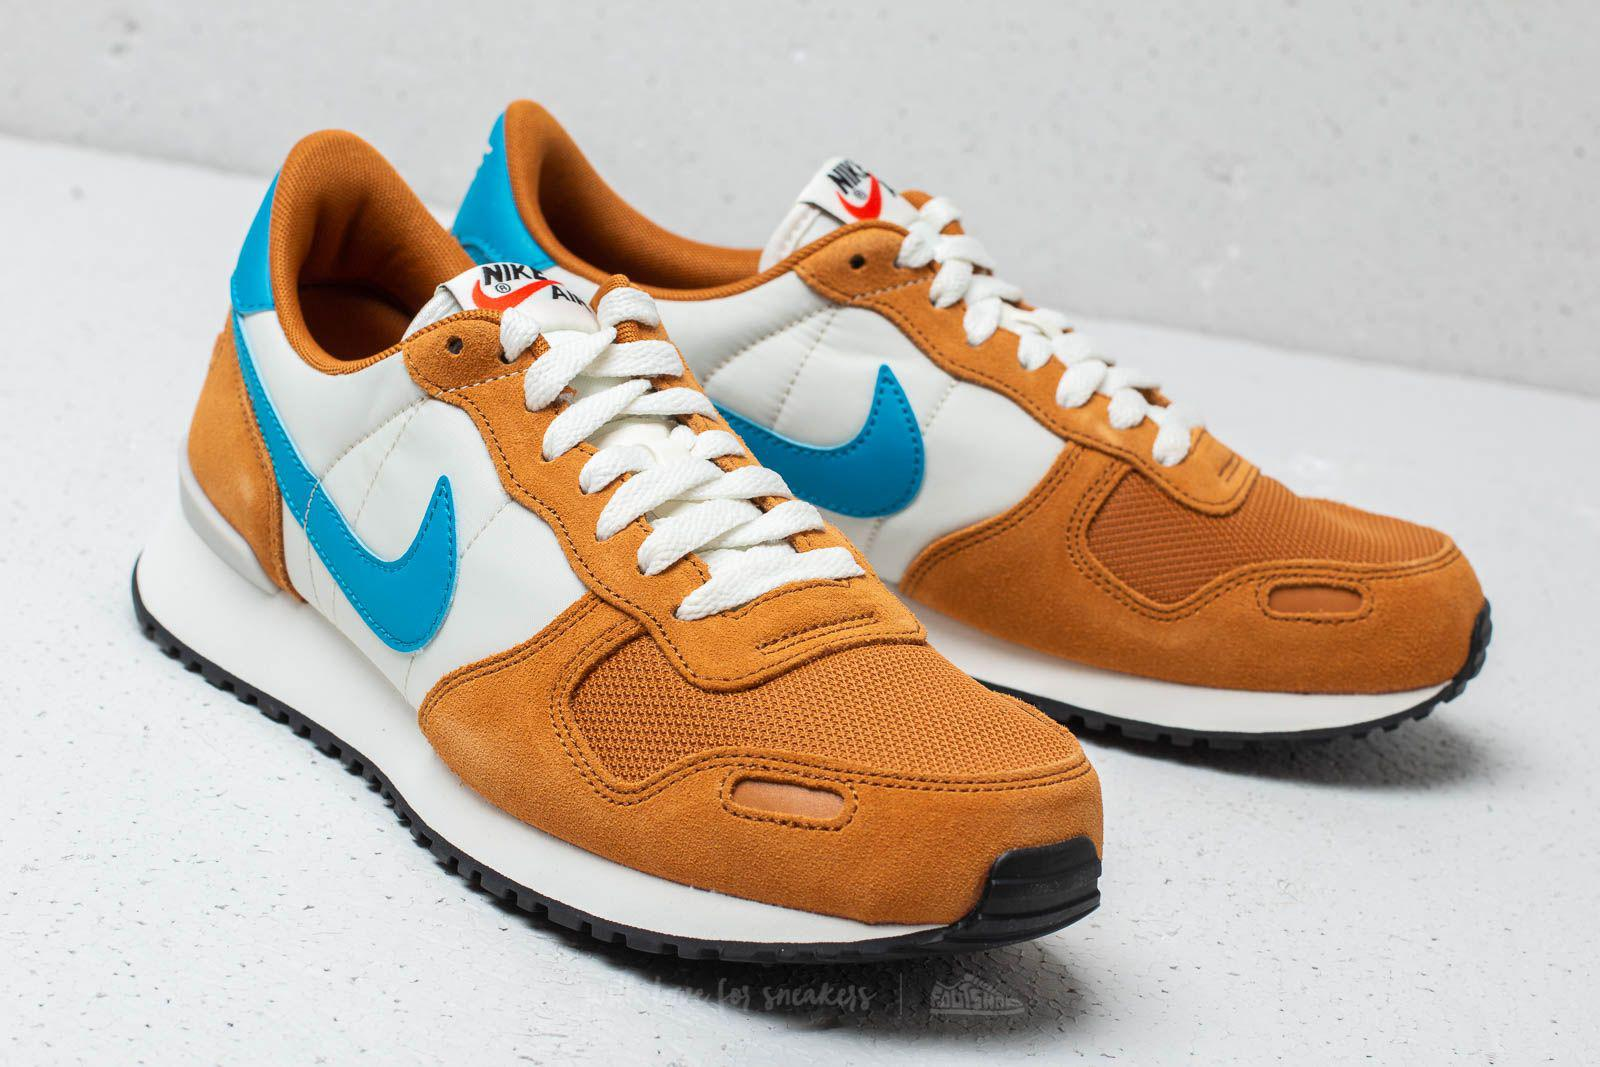 promo code 7cfcc a069e Nike Air Vortex Desert Ochre  Blue Orbit in Blue for Men - Lyst